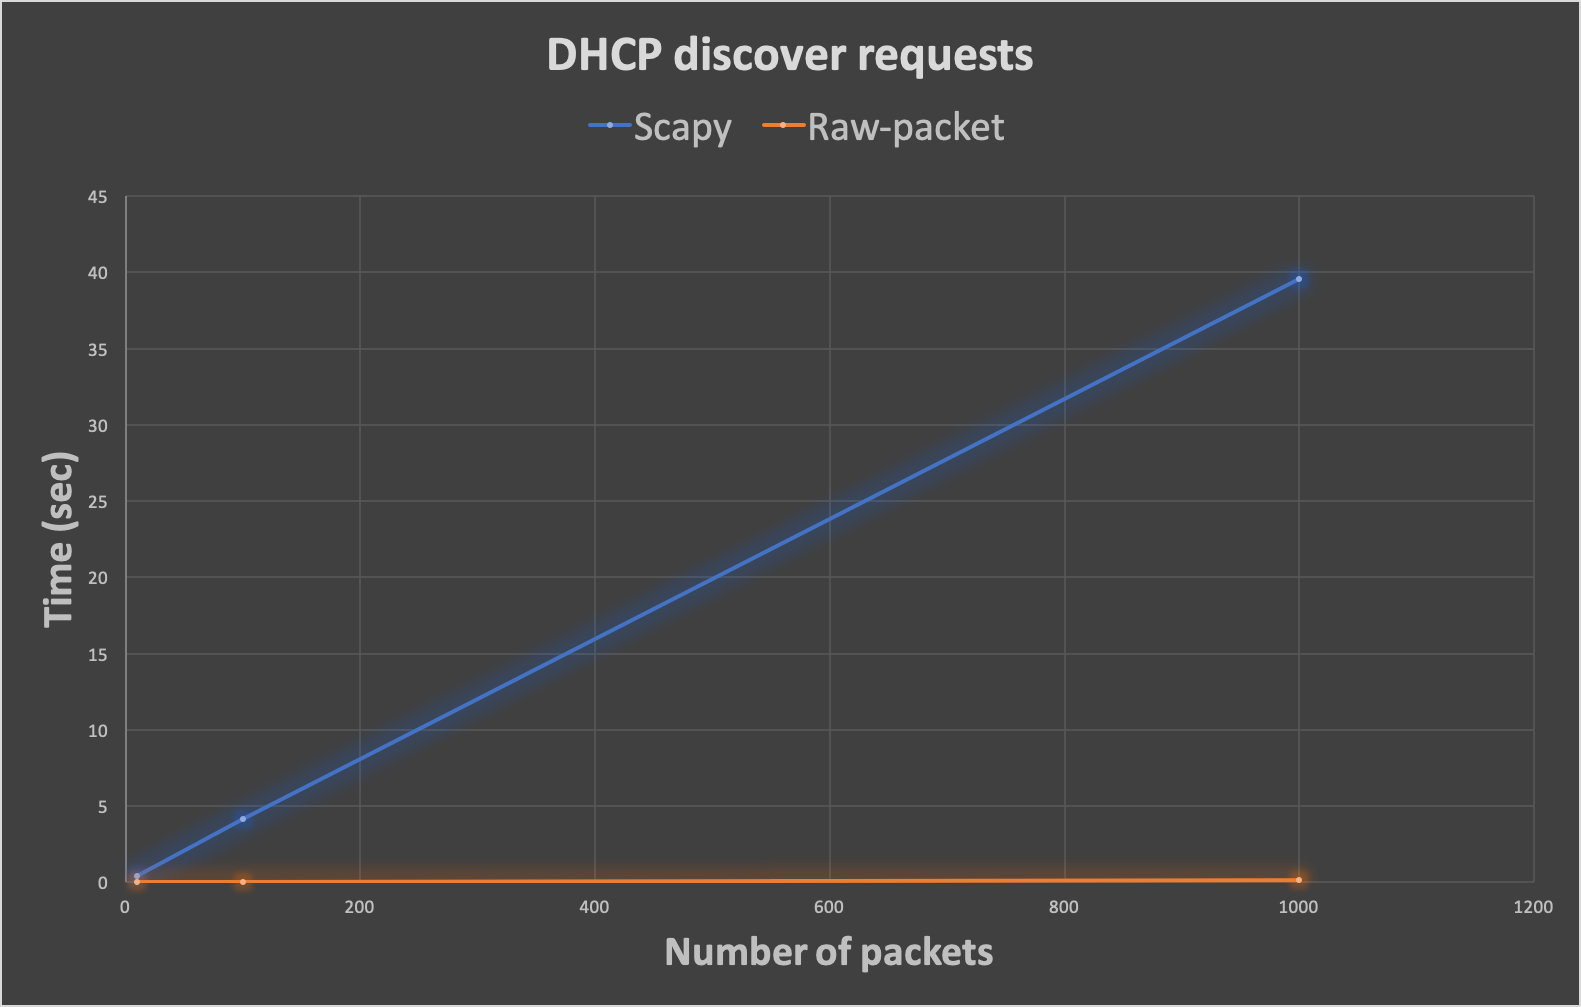 Scapy vs. Raw-packet DHCP discover requests